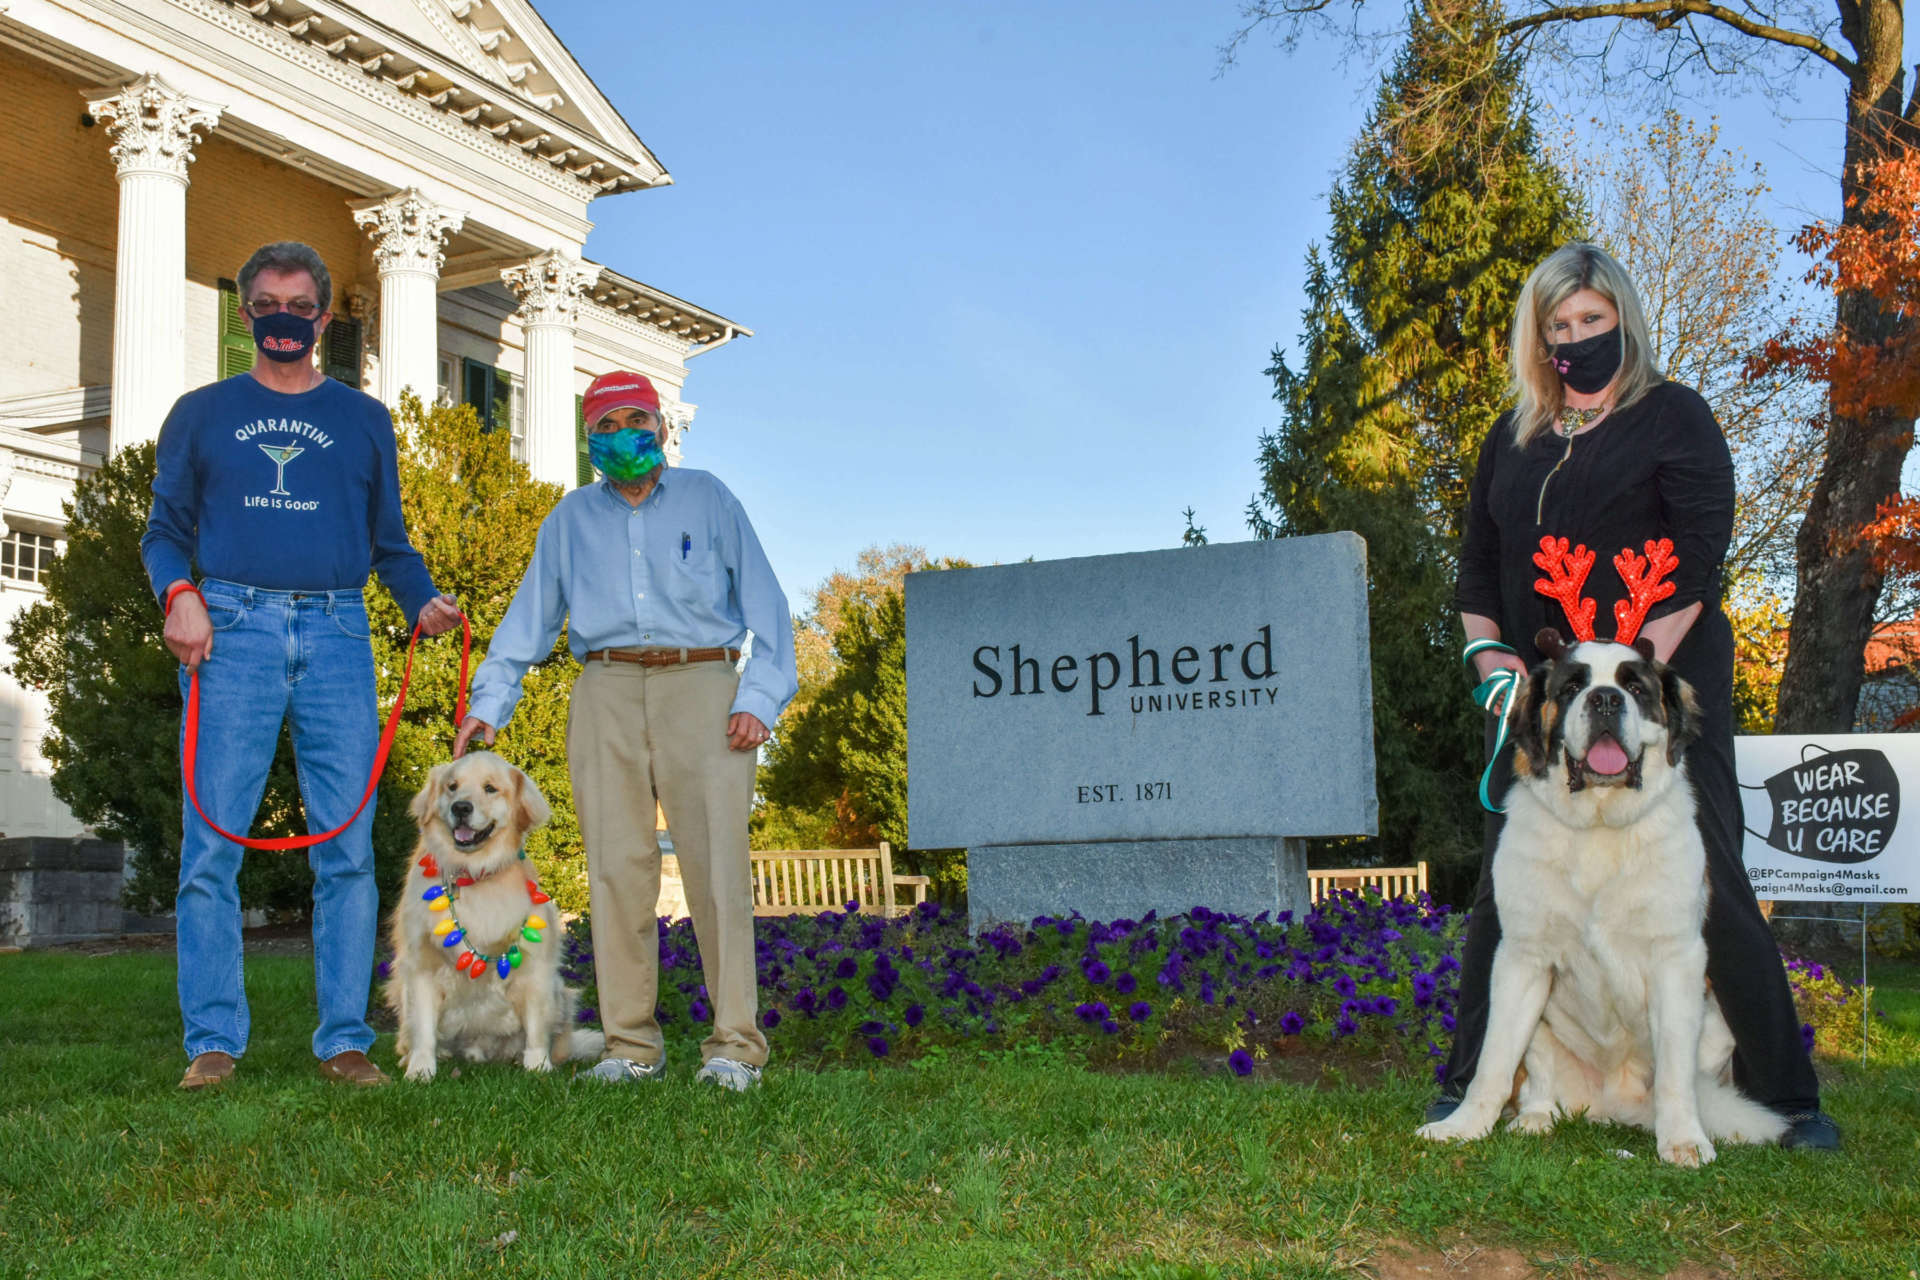 Pictured (l. to r.) are Paul Gerrard, community organizer, with Rufus; Jim Auxer, Shepherdstown mayor; and Amy Speck, university organizer, with Smoke.